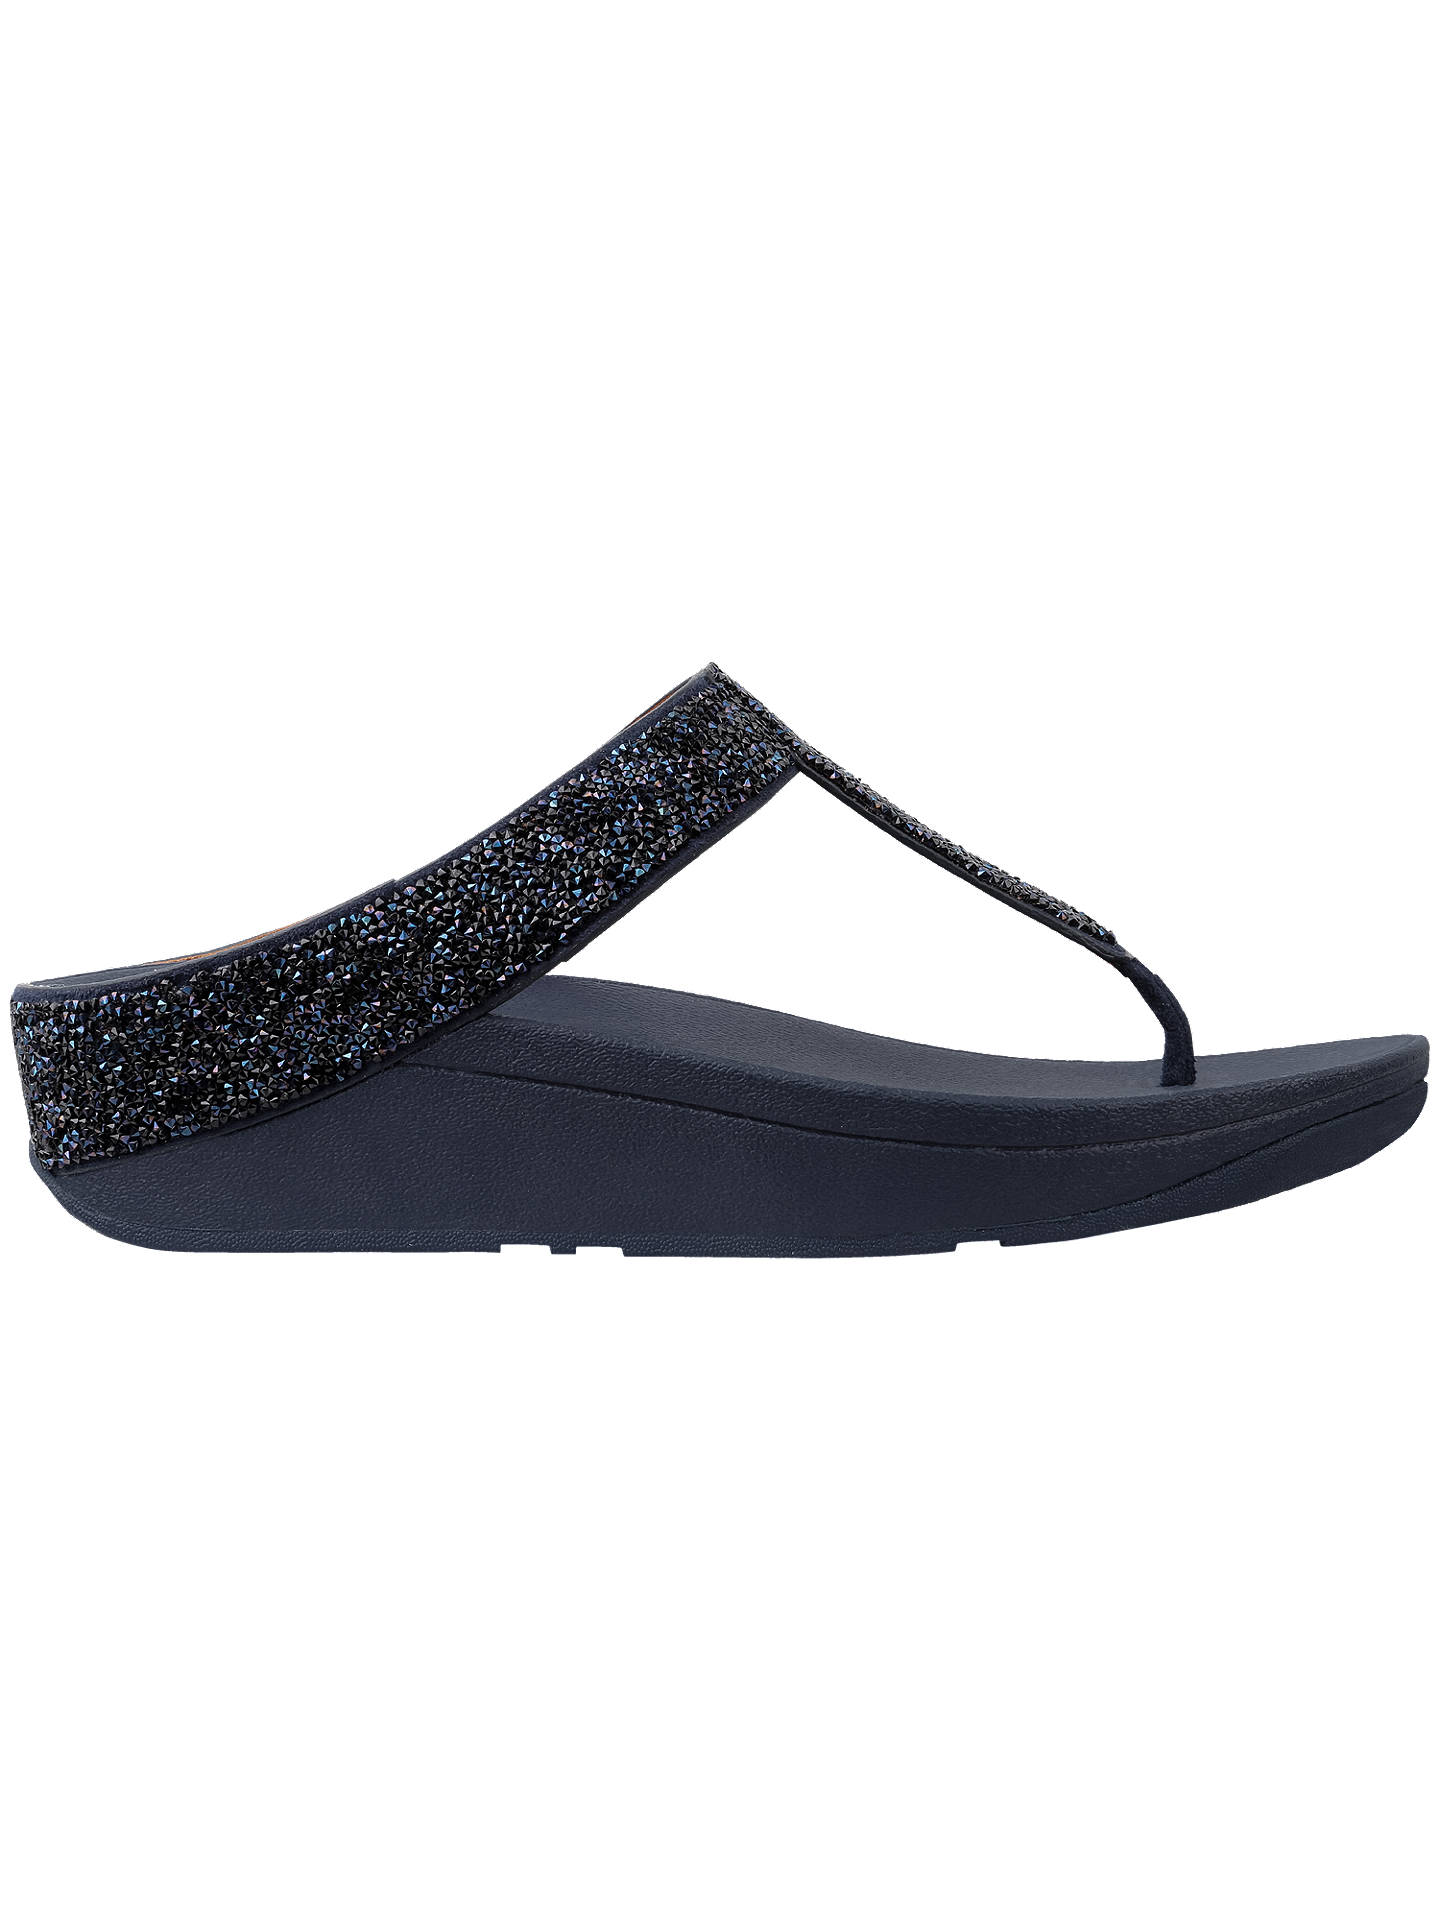 4c3d88ed8 Buy FitFlop Fino Crystal Toe Post Sandals